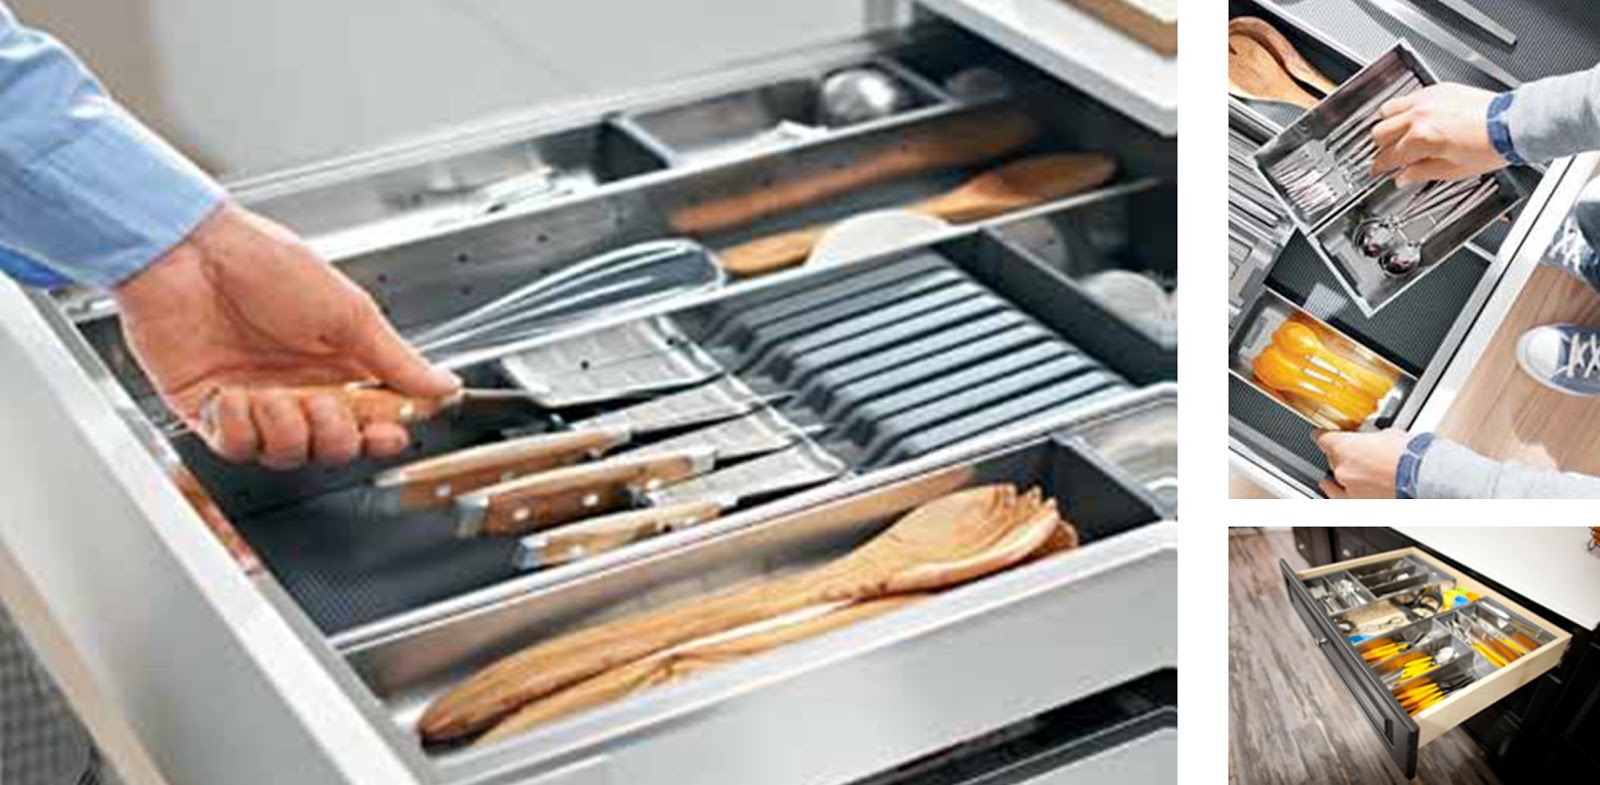 ORGA LINE An Adjustable Organization System That Can Be Used In Wood  Drawers To Organize Utensils, Knives, Cutlery, And Any Other Items Stored  In A Top ...